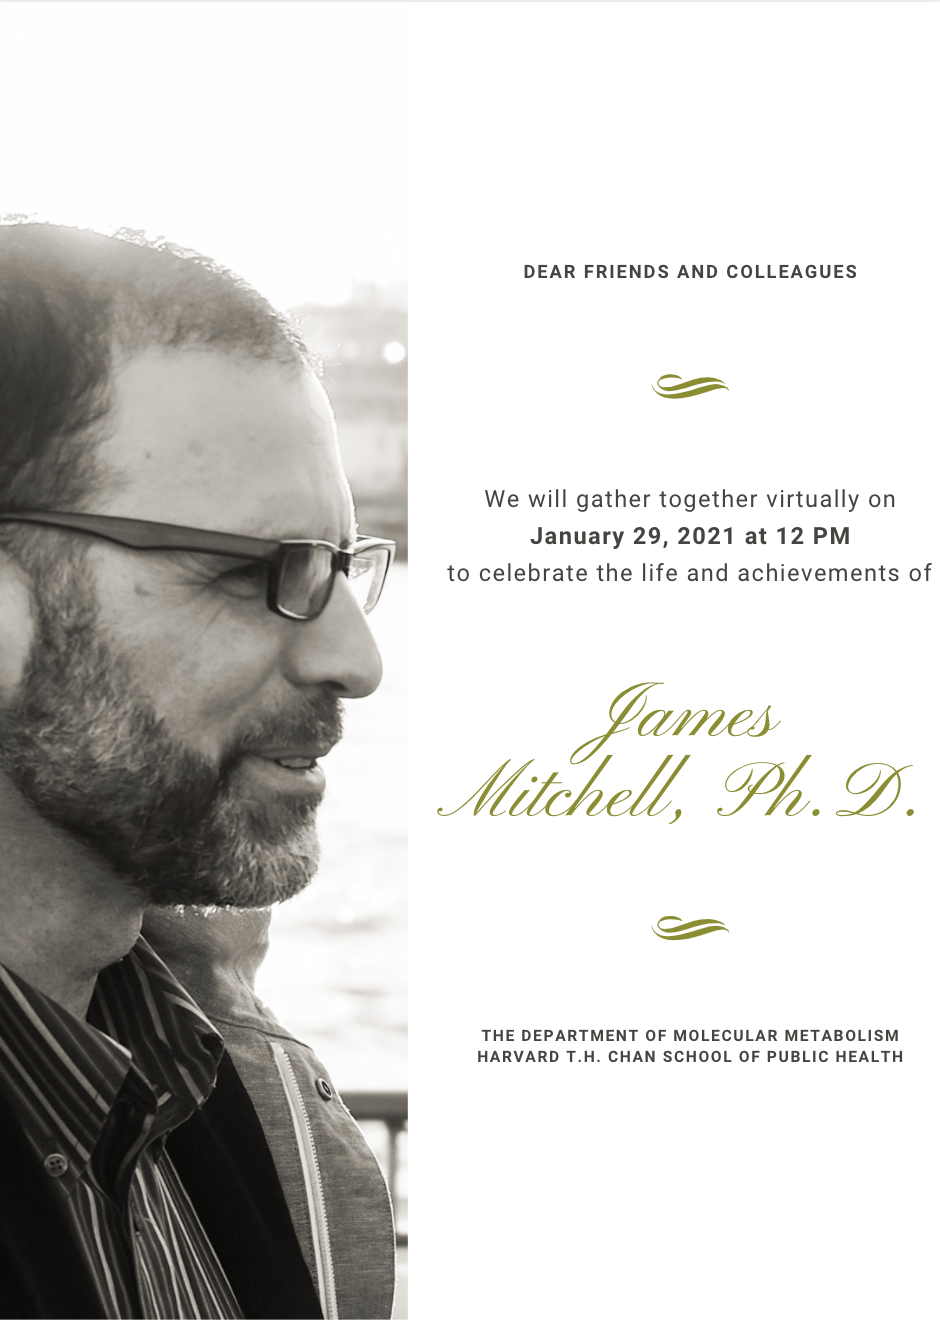 Memorial Card For James Mitchell, Ph. D, with a photo of Dr. Mitchell smiling by the water. There is light shining on his face.